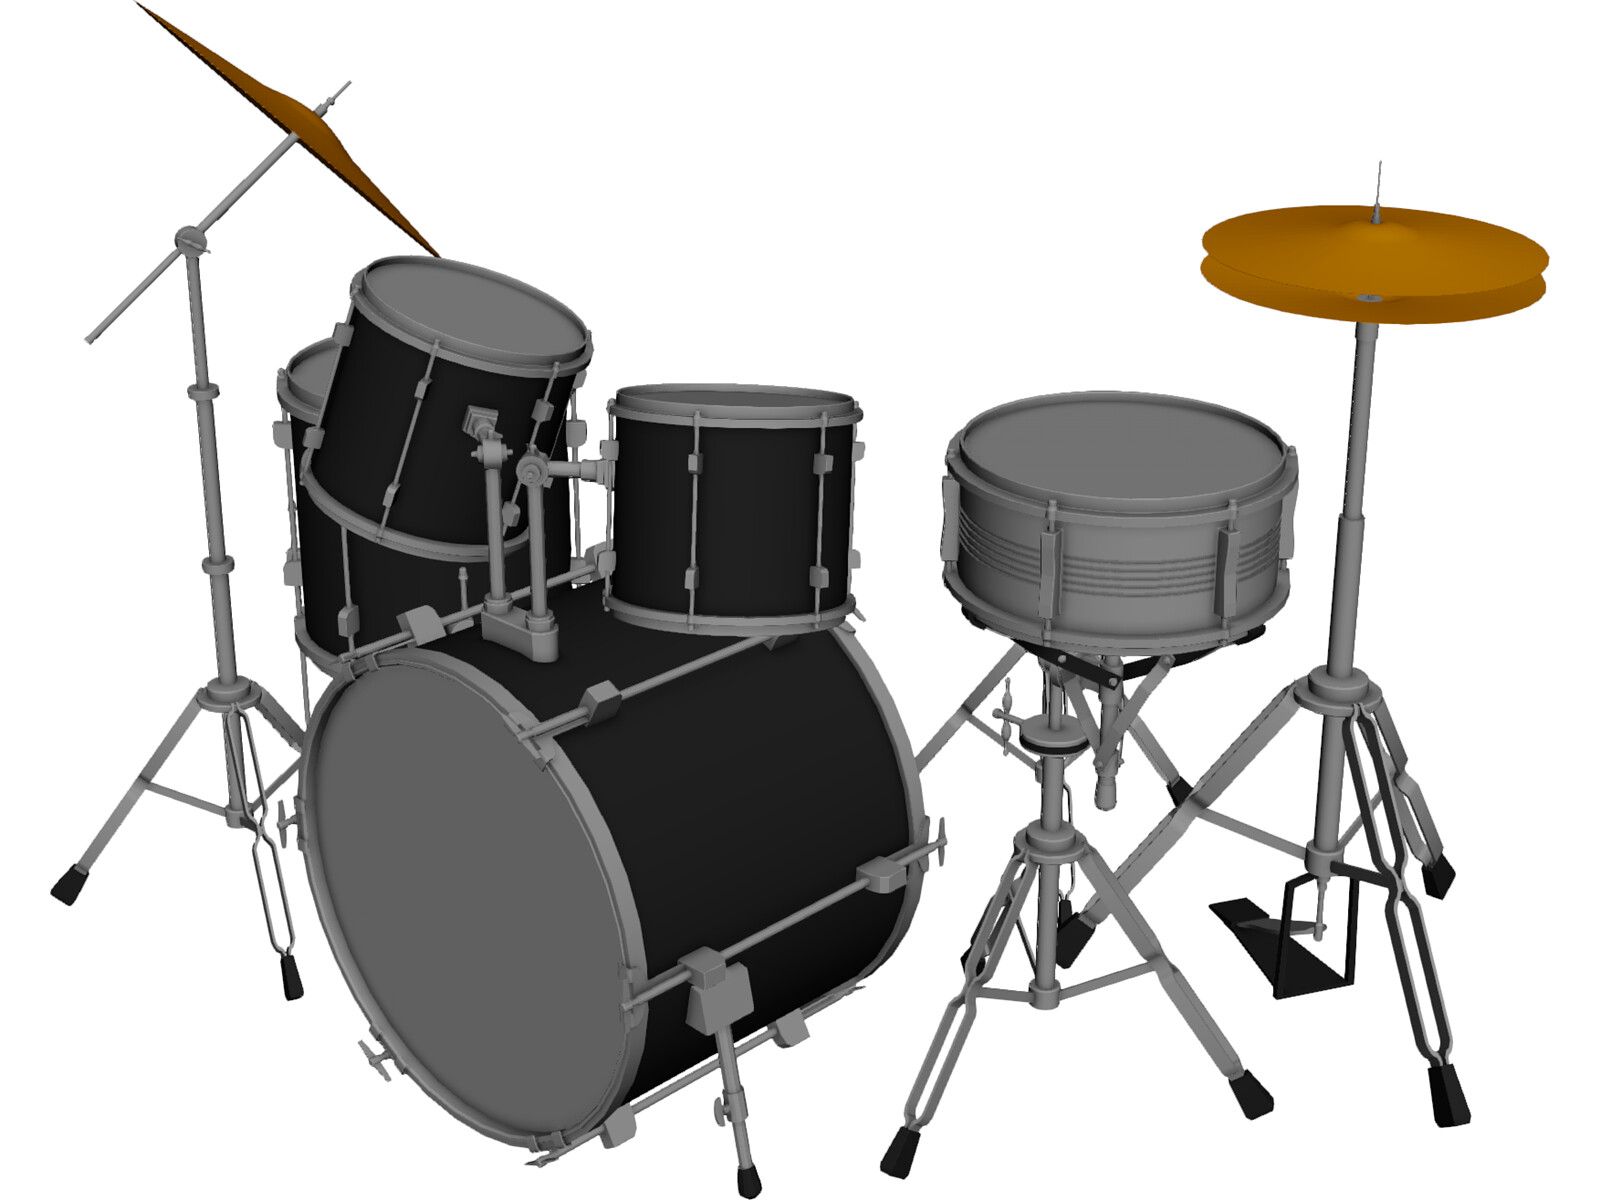 Drum Set 3D Model - 3D CAD Browser